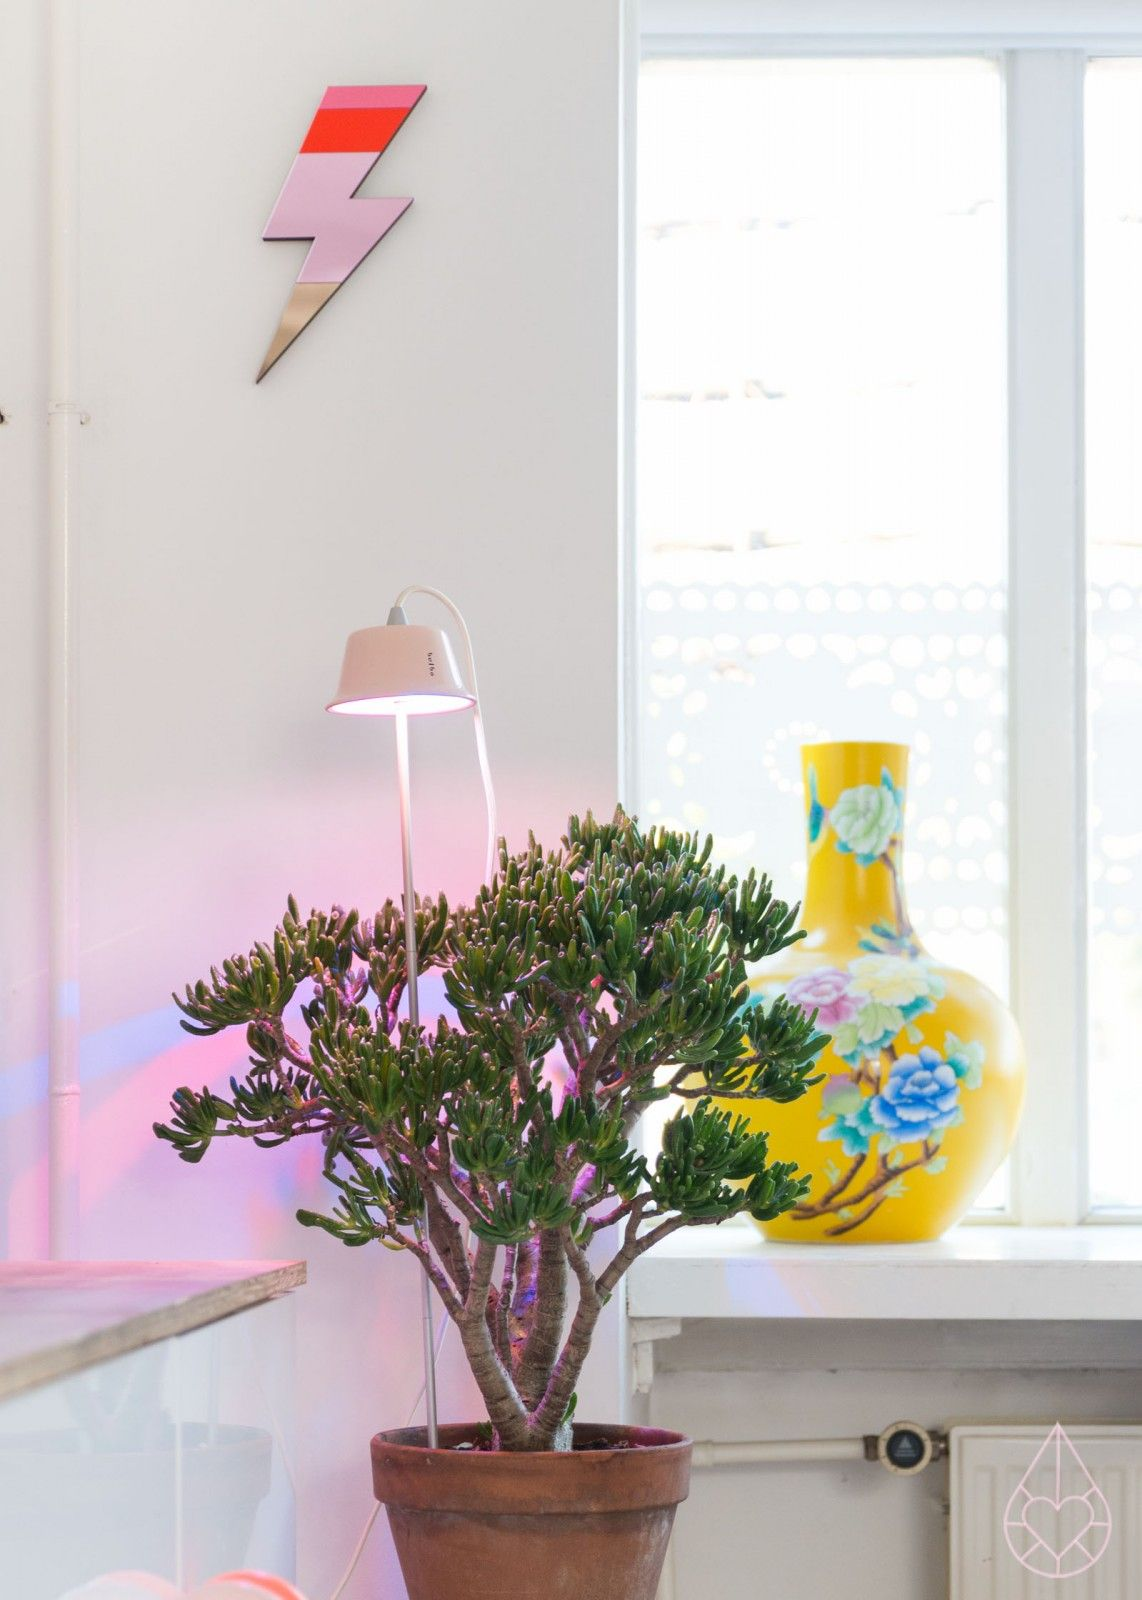 Bulbo Light For Food Zilverblauw Interieur Planten Lampen